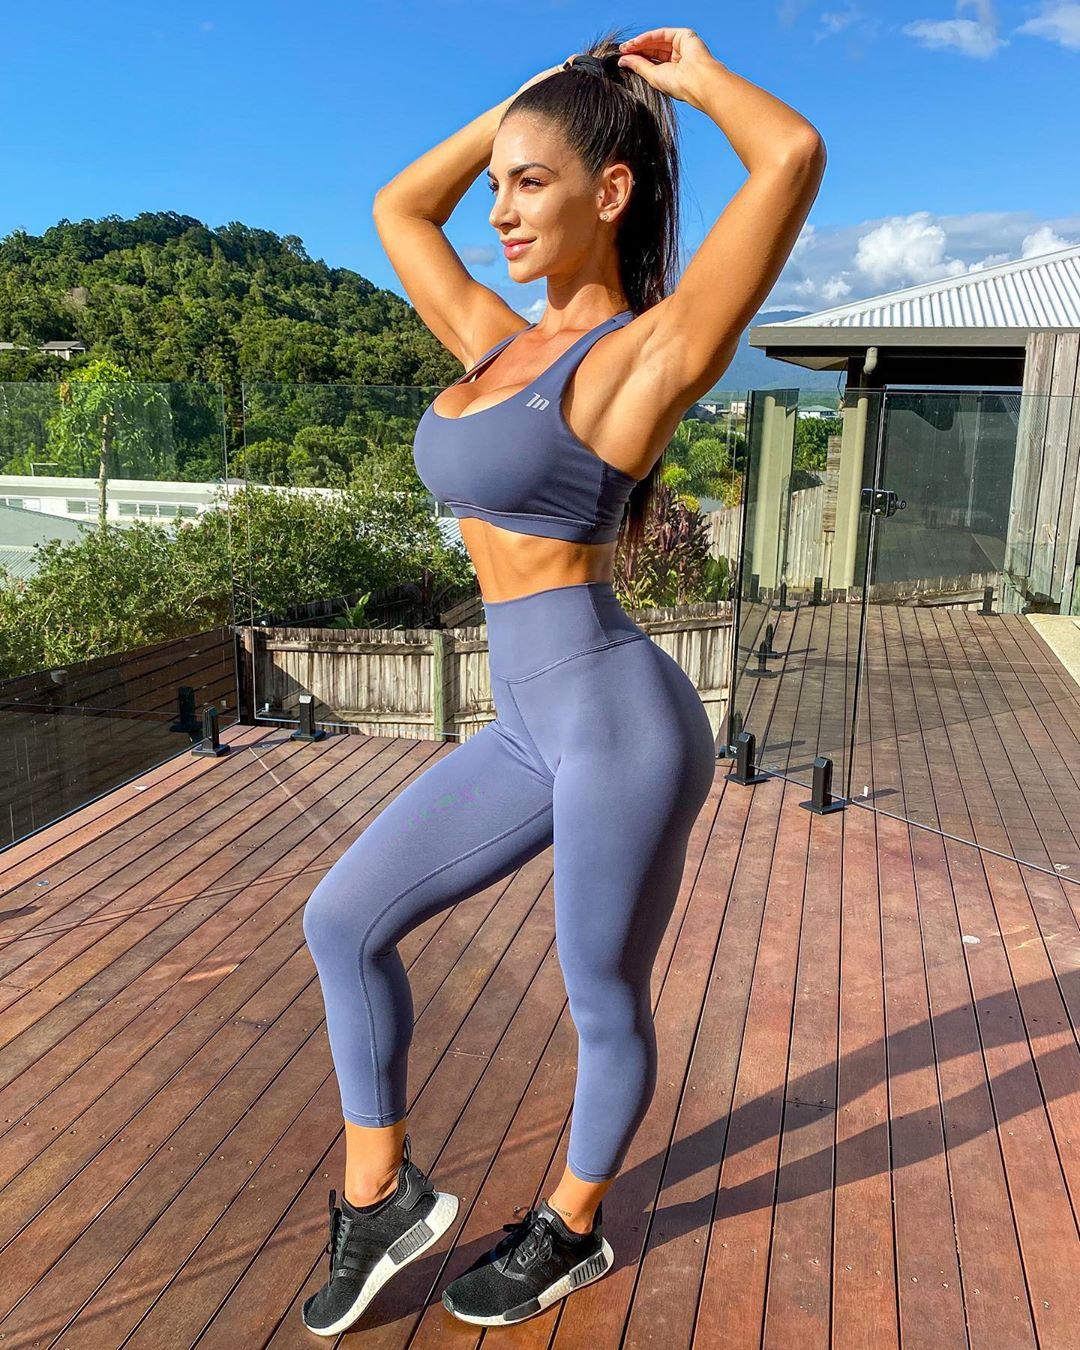 Libby Powell Beautiful Muscle Girls Самые новые твиты от libby powell (@libby___powell): libby powell beautiful muscle girls